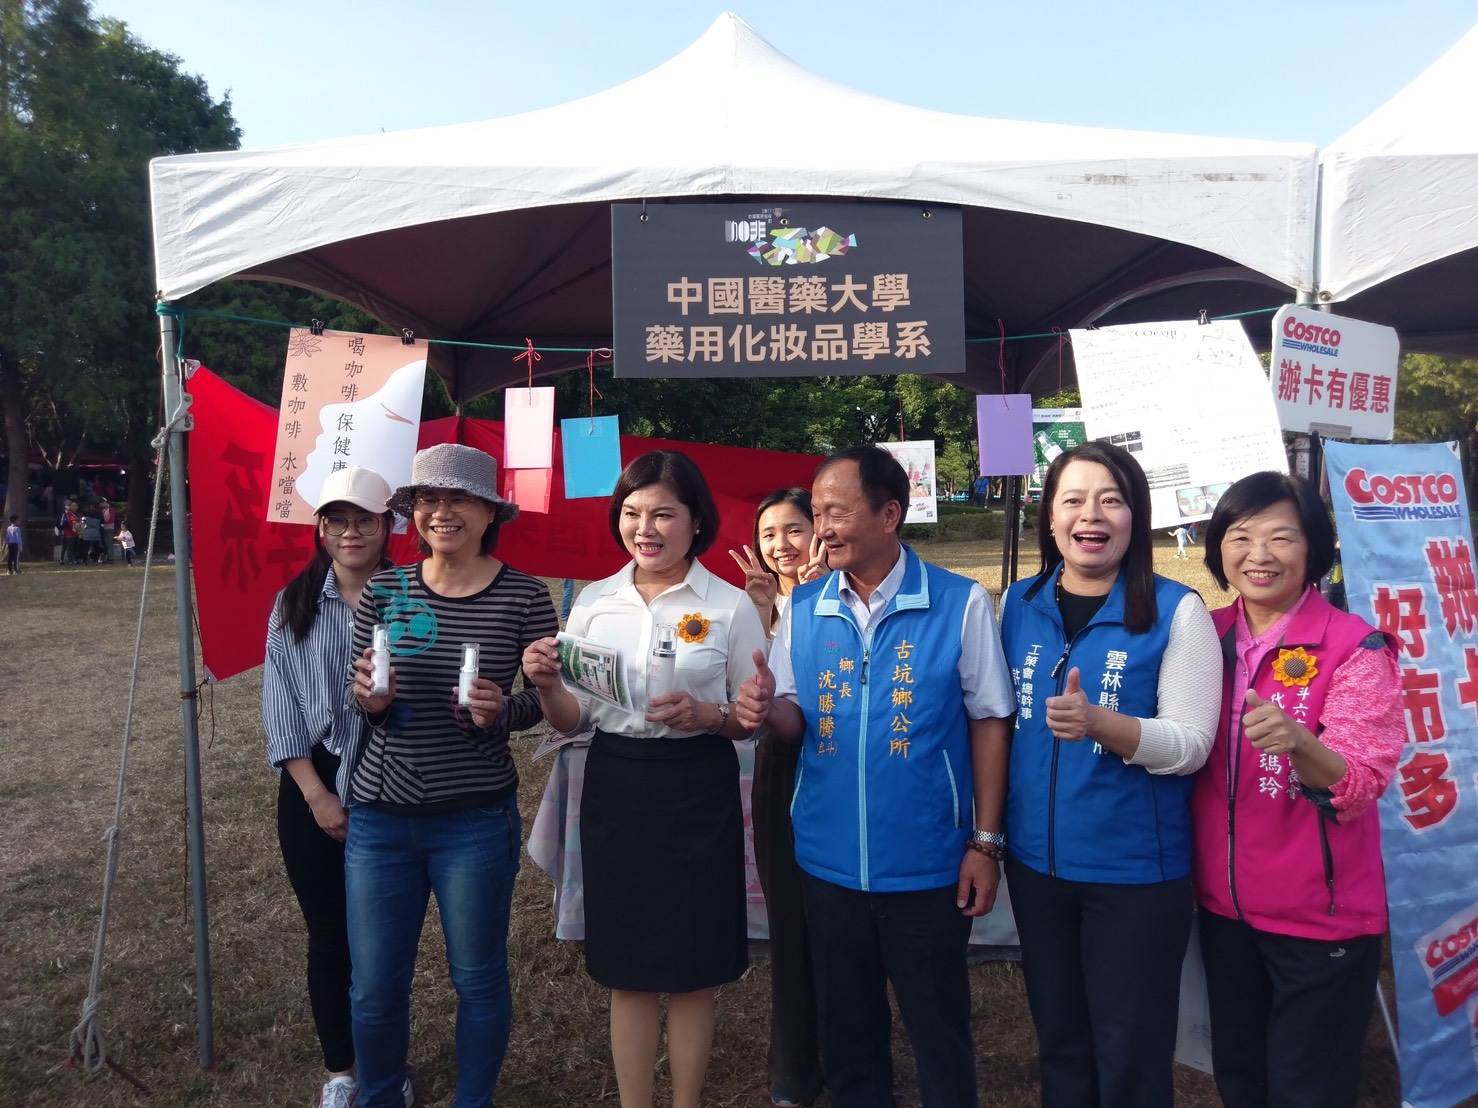 Ms. Li-Shang Chang, Magistrate of Yunlin County, visiting the booth of Coexist